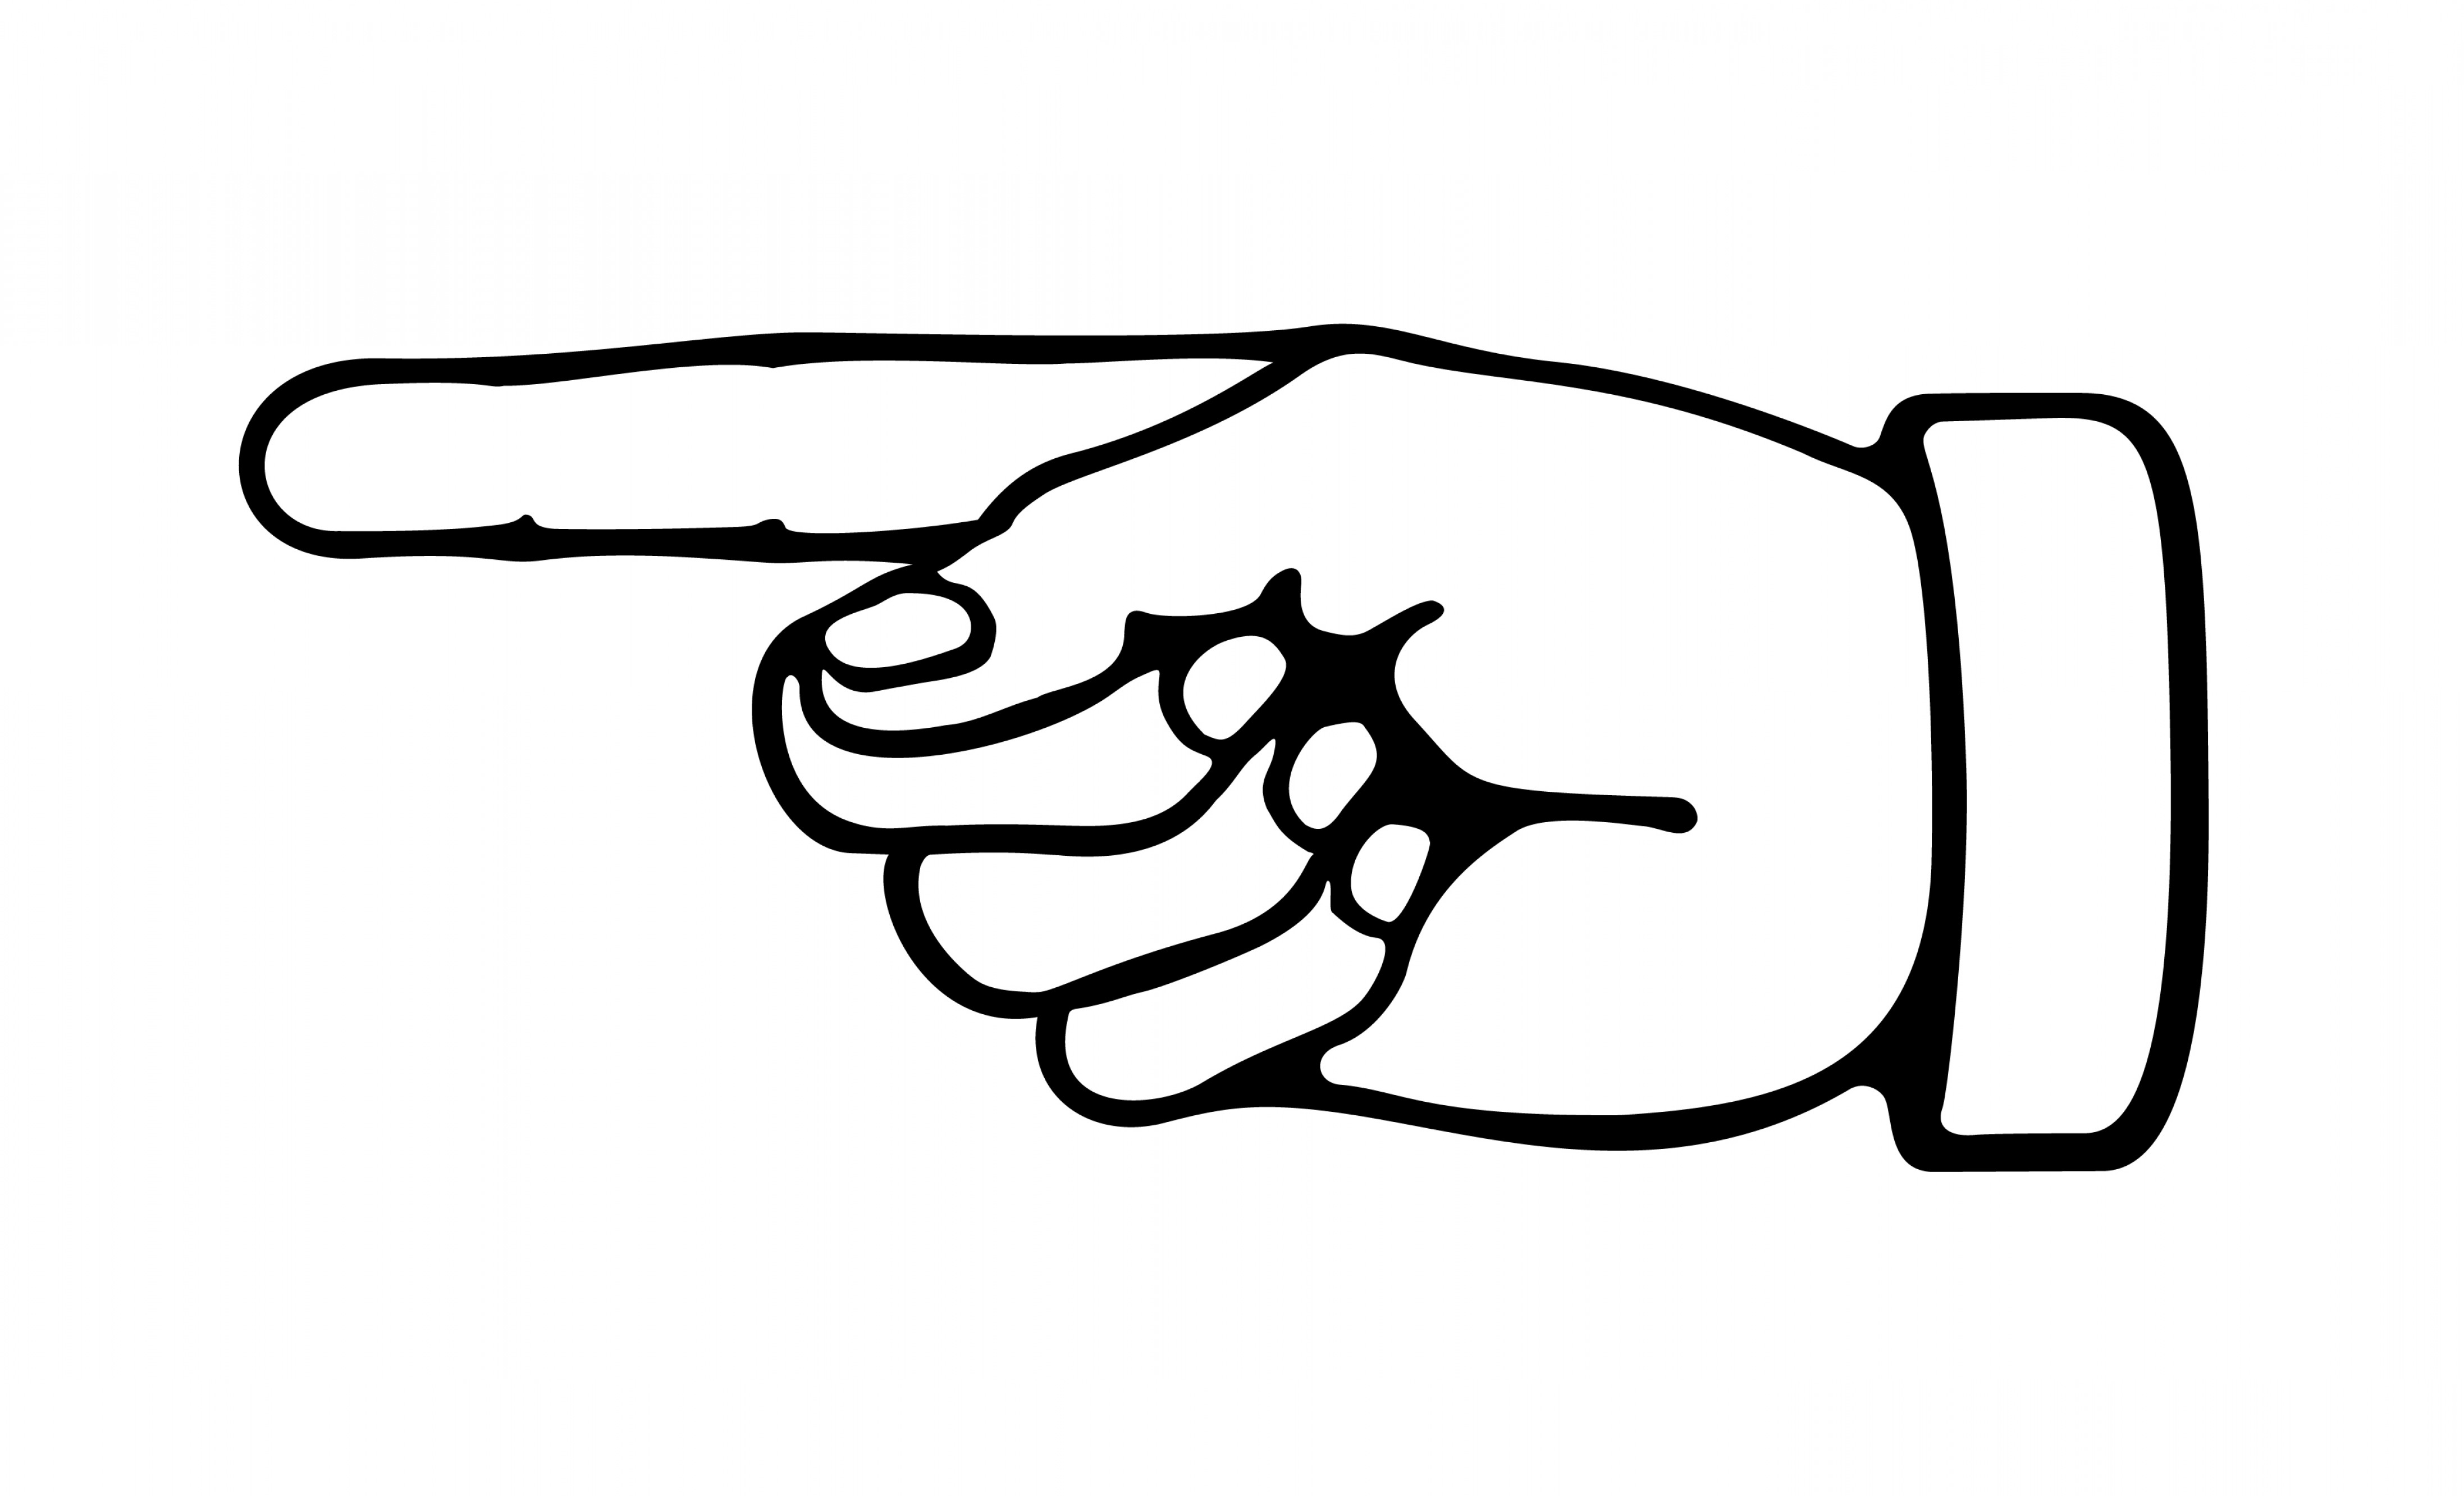 Hand pointing clipart 7 » Clipart Station